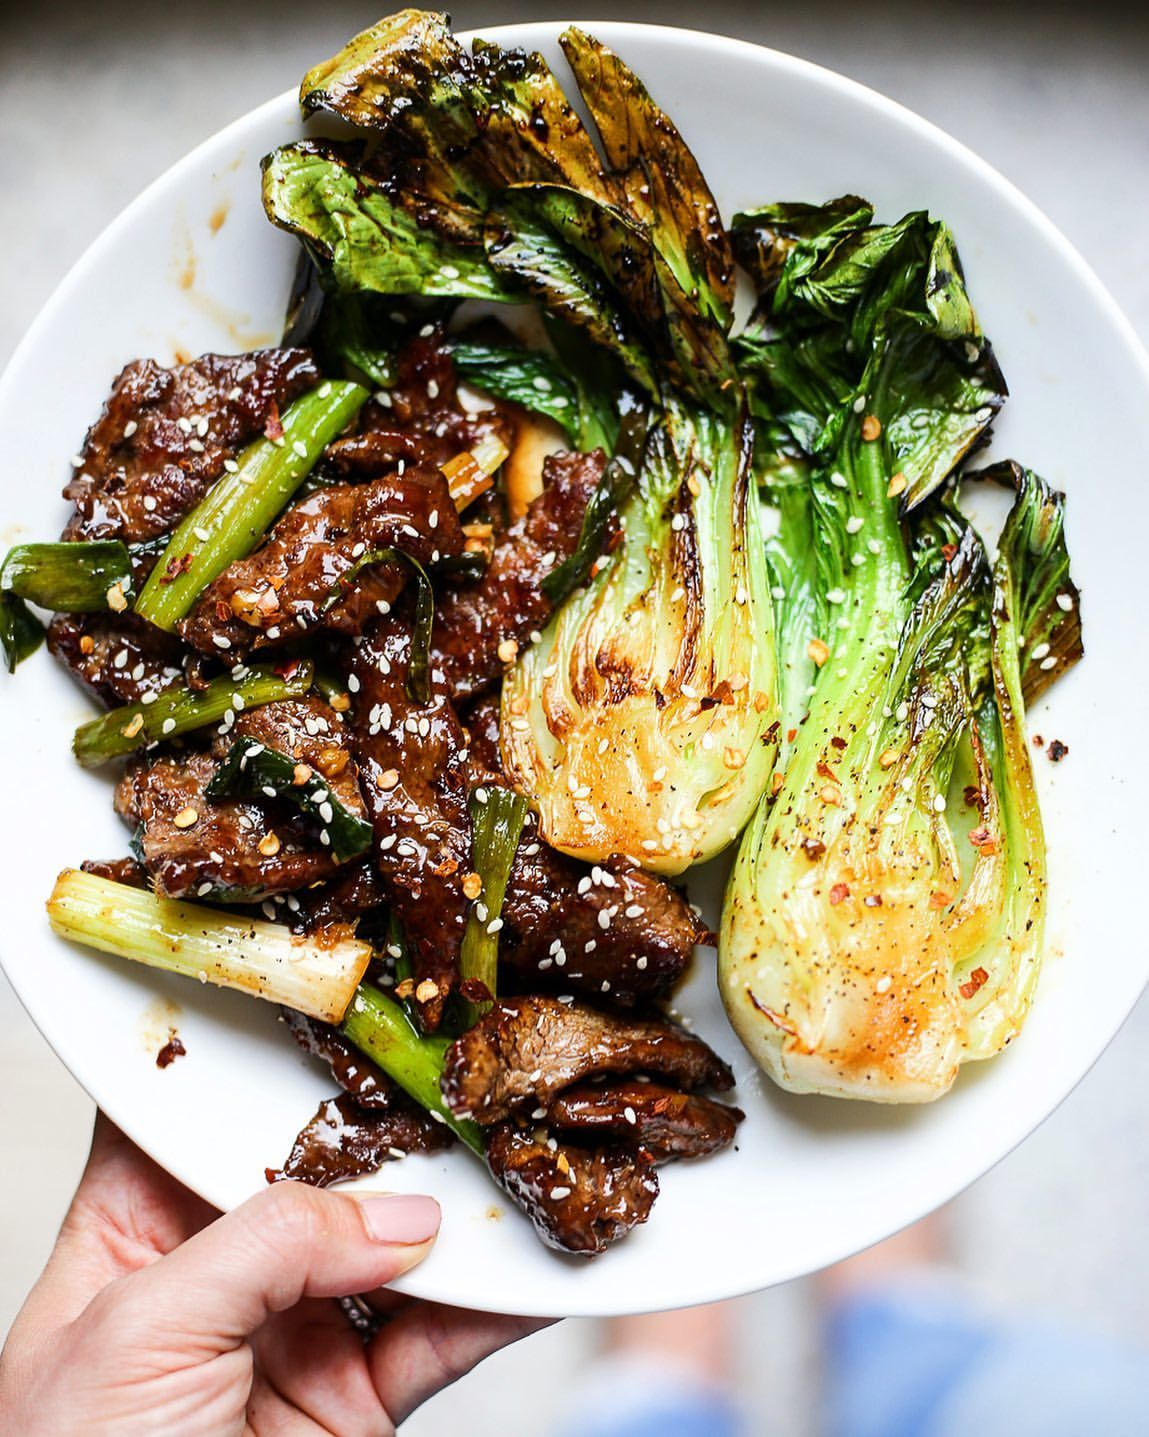 Beef And Bok Choy Stir Fry By Thedefineddish Quick Easy Recipe The Feedfeed